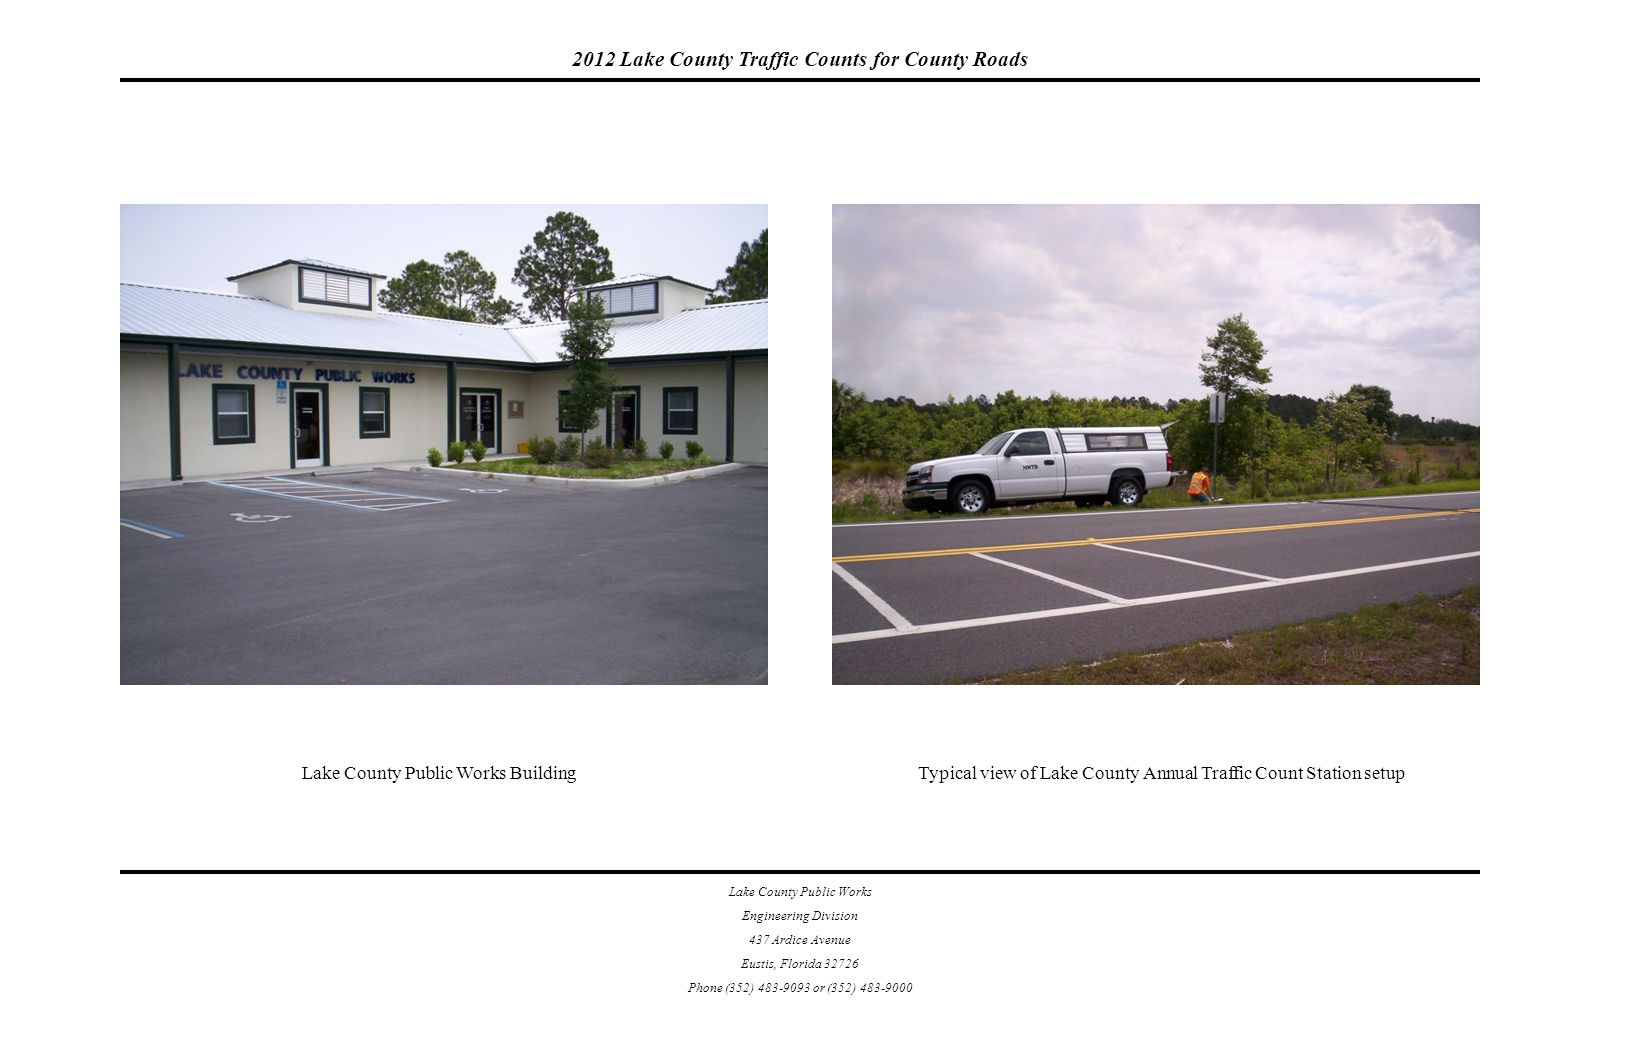 2012 Lake County Traffic Counts for County Roads Lake County Public Works Engineering Division 437 Ardice Avenue Eustis, Florida 32726 Phone (352) 483-9093 or (352) 483-9000 Lake County Public Works Building Typical view of Lake County Annual Traffic Count Station setup